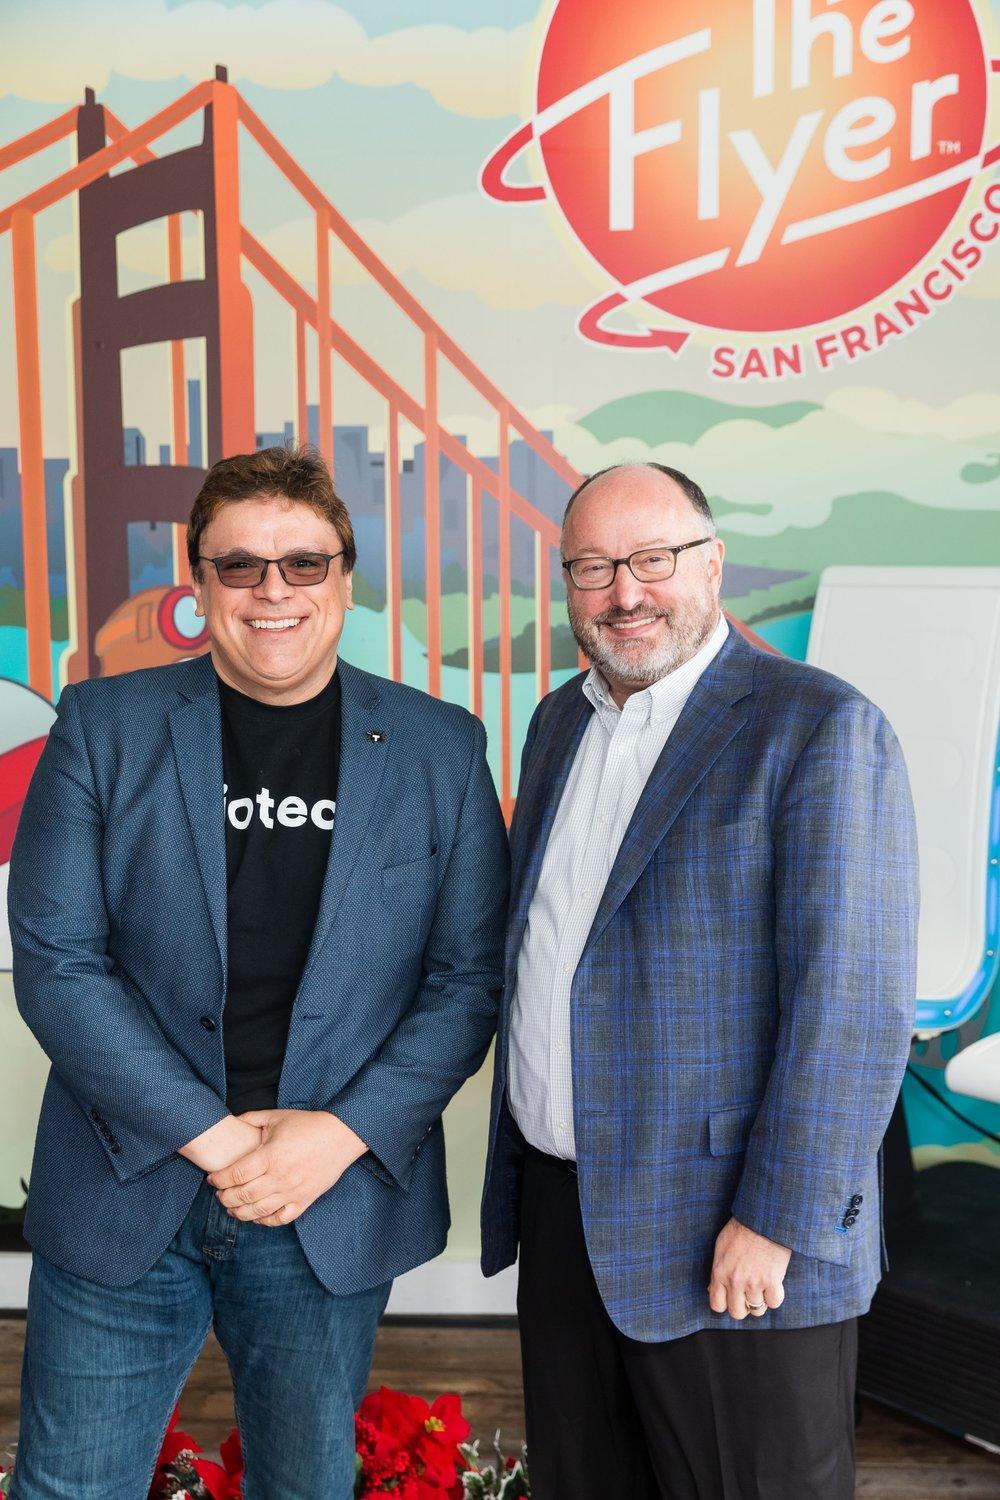 Ernest Yale, CEO of Triotech and John Alter, owner of The Flyer - San Francisco